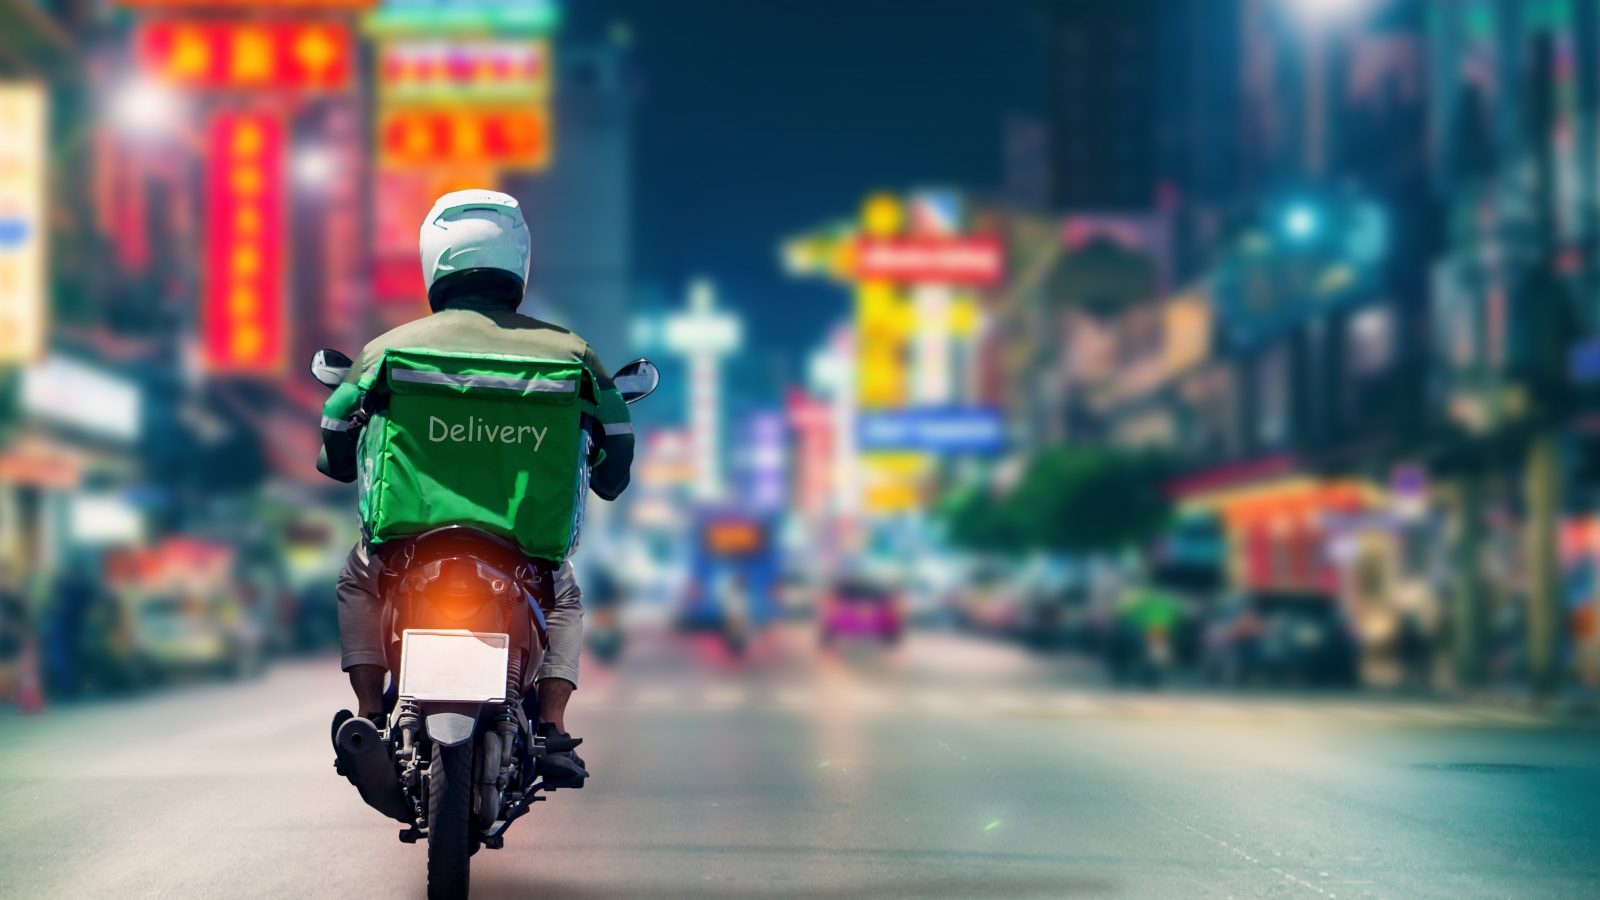 Man on Motorbike delivers products to customers who ordered online